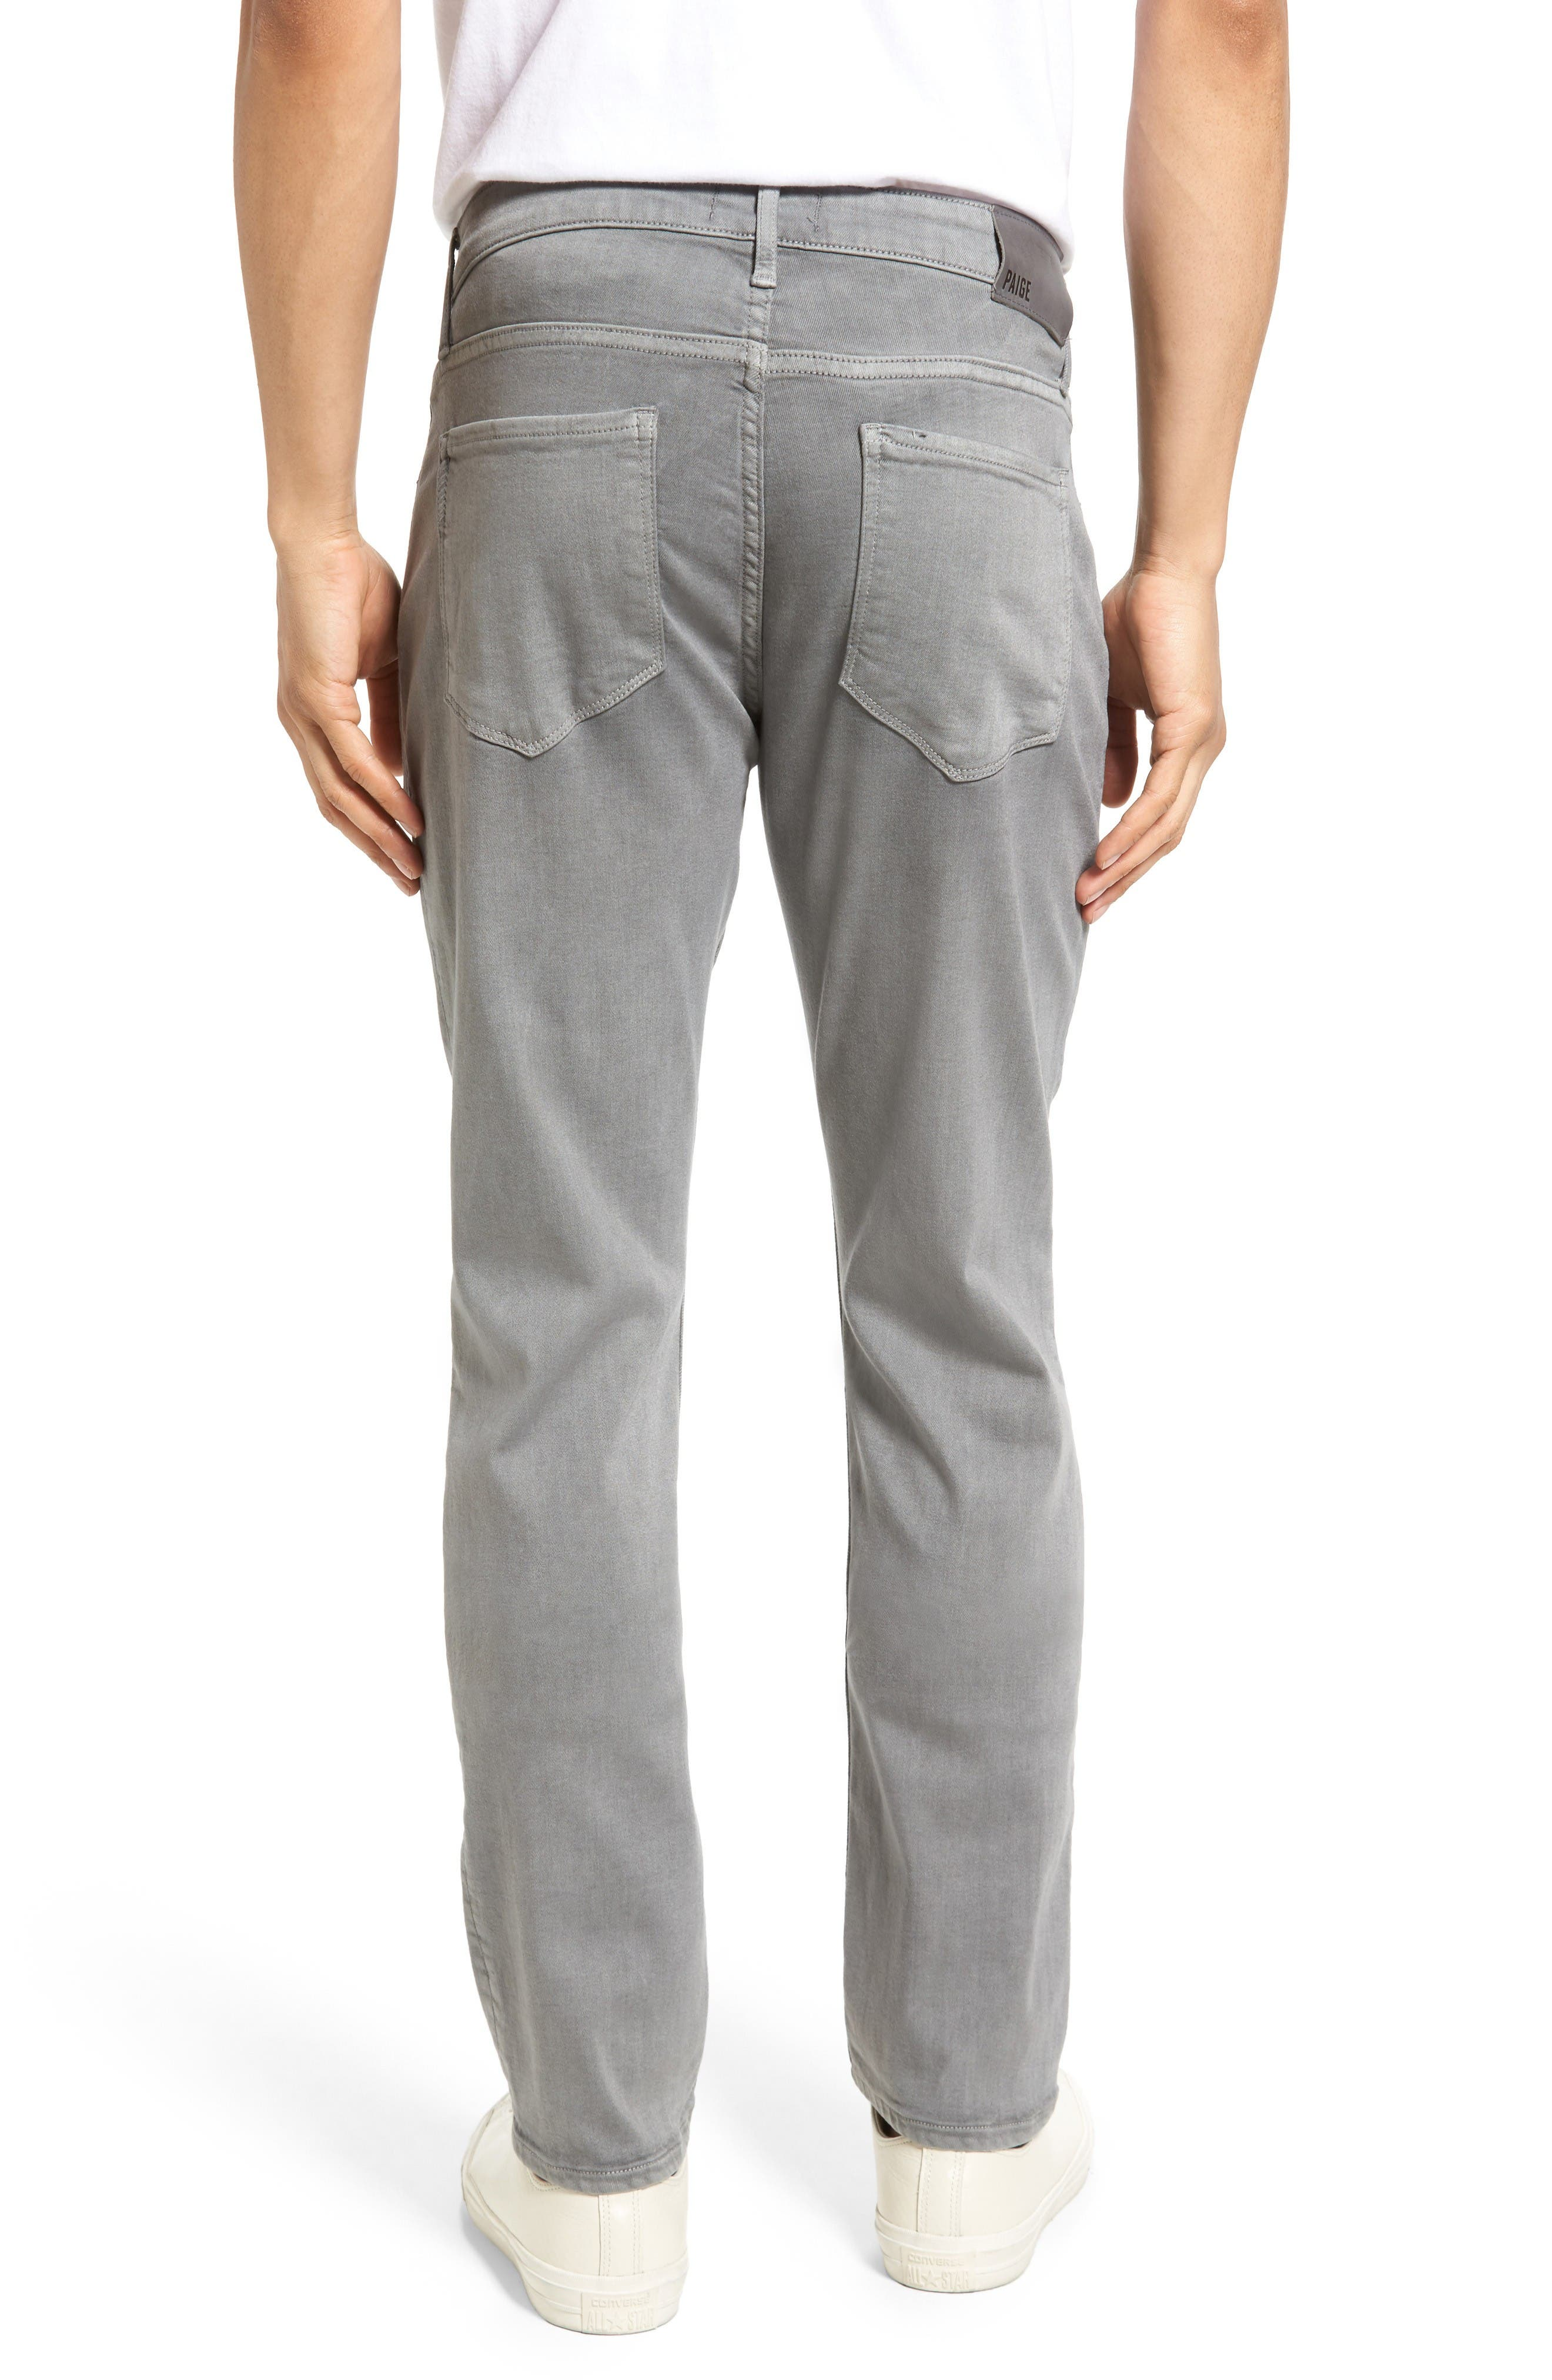 Transcend - Lennox Slim Fit Jeans,                             Alternate thumbnail 2, color,                             Grey Clay